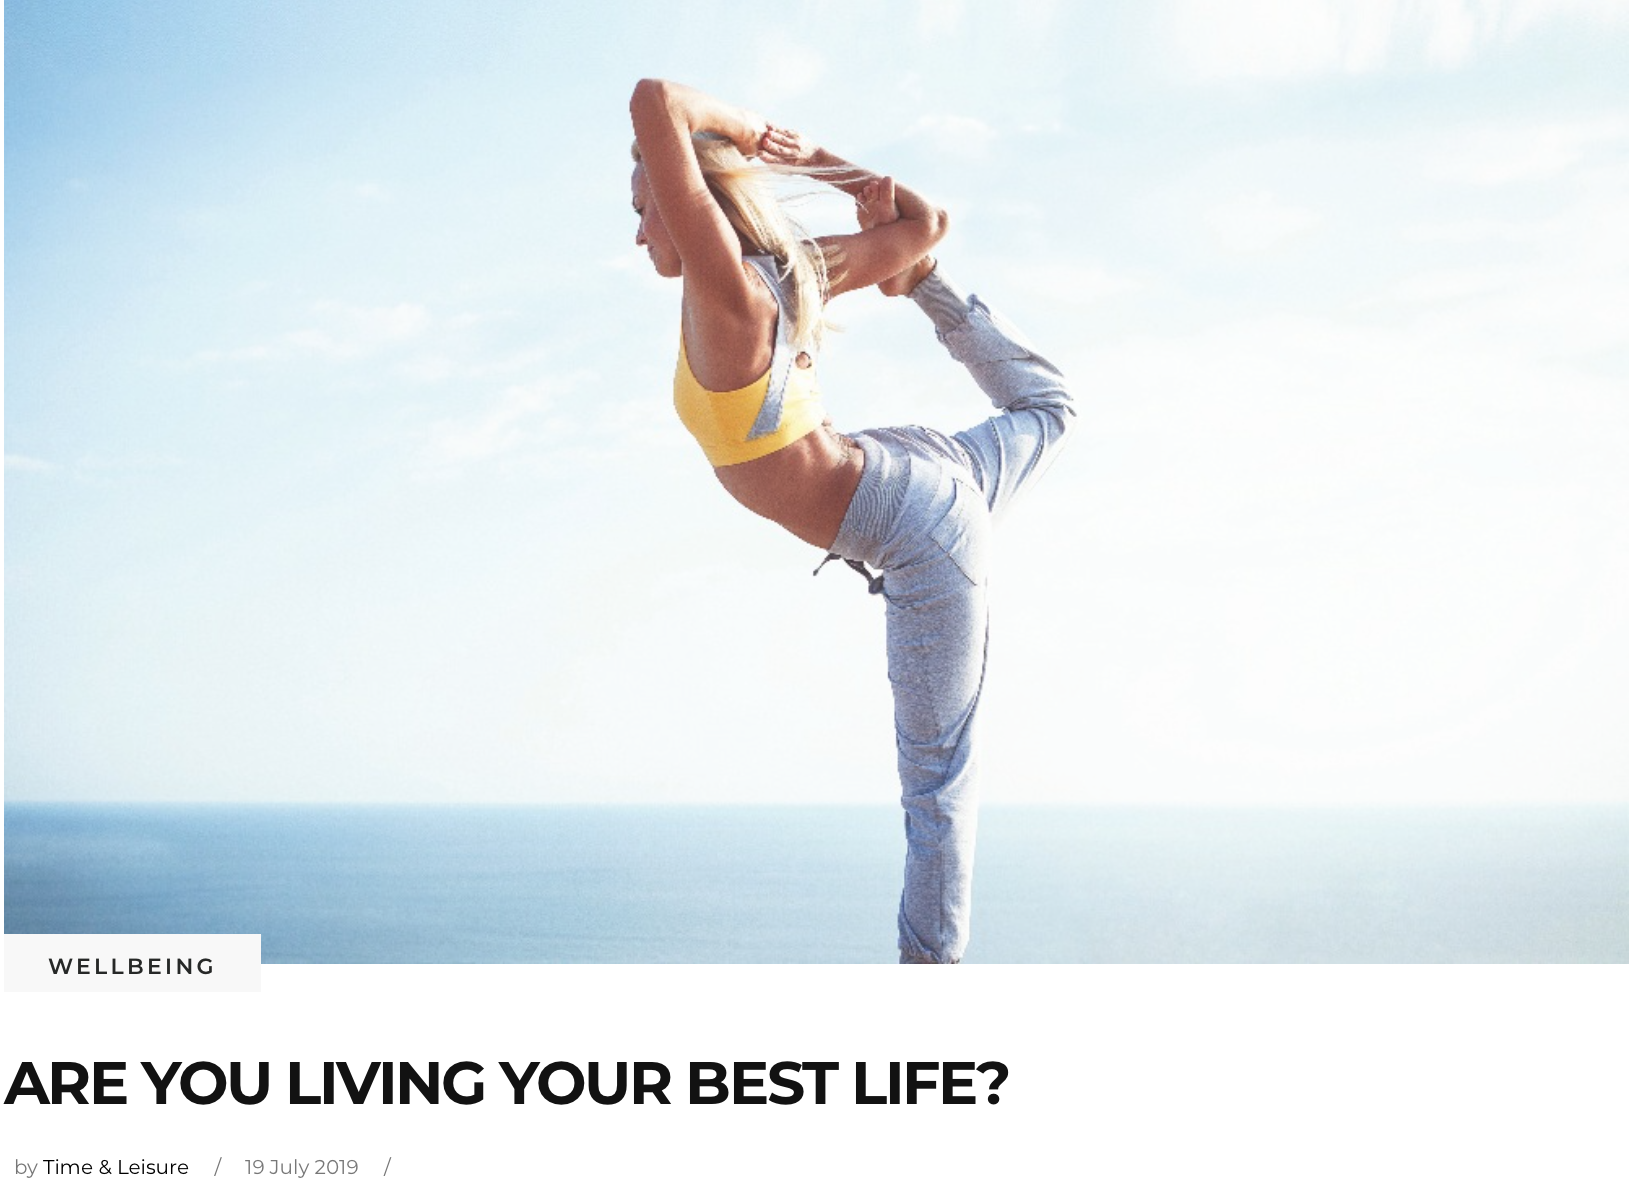 Time & Leisure Magazine: Are you living your best life?